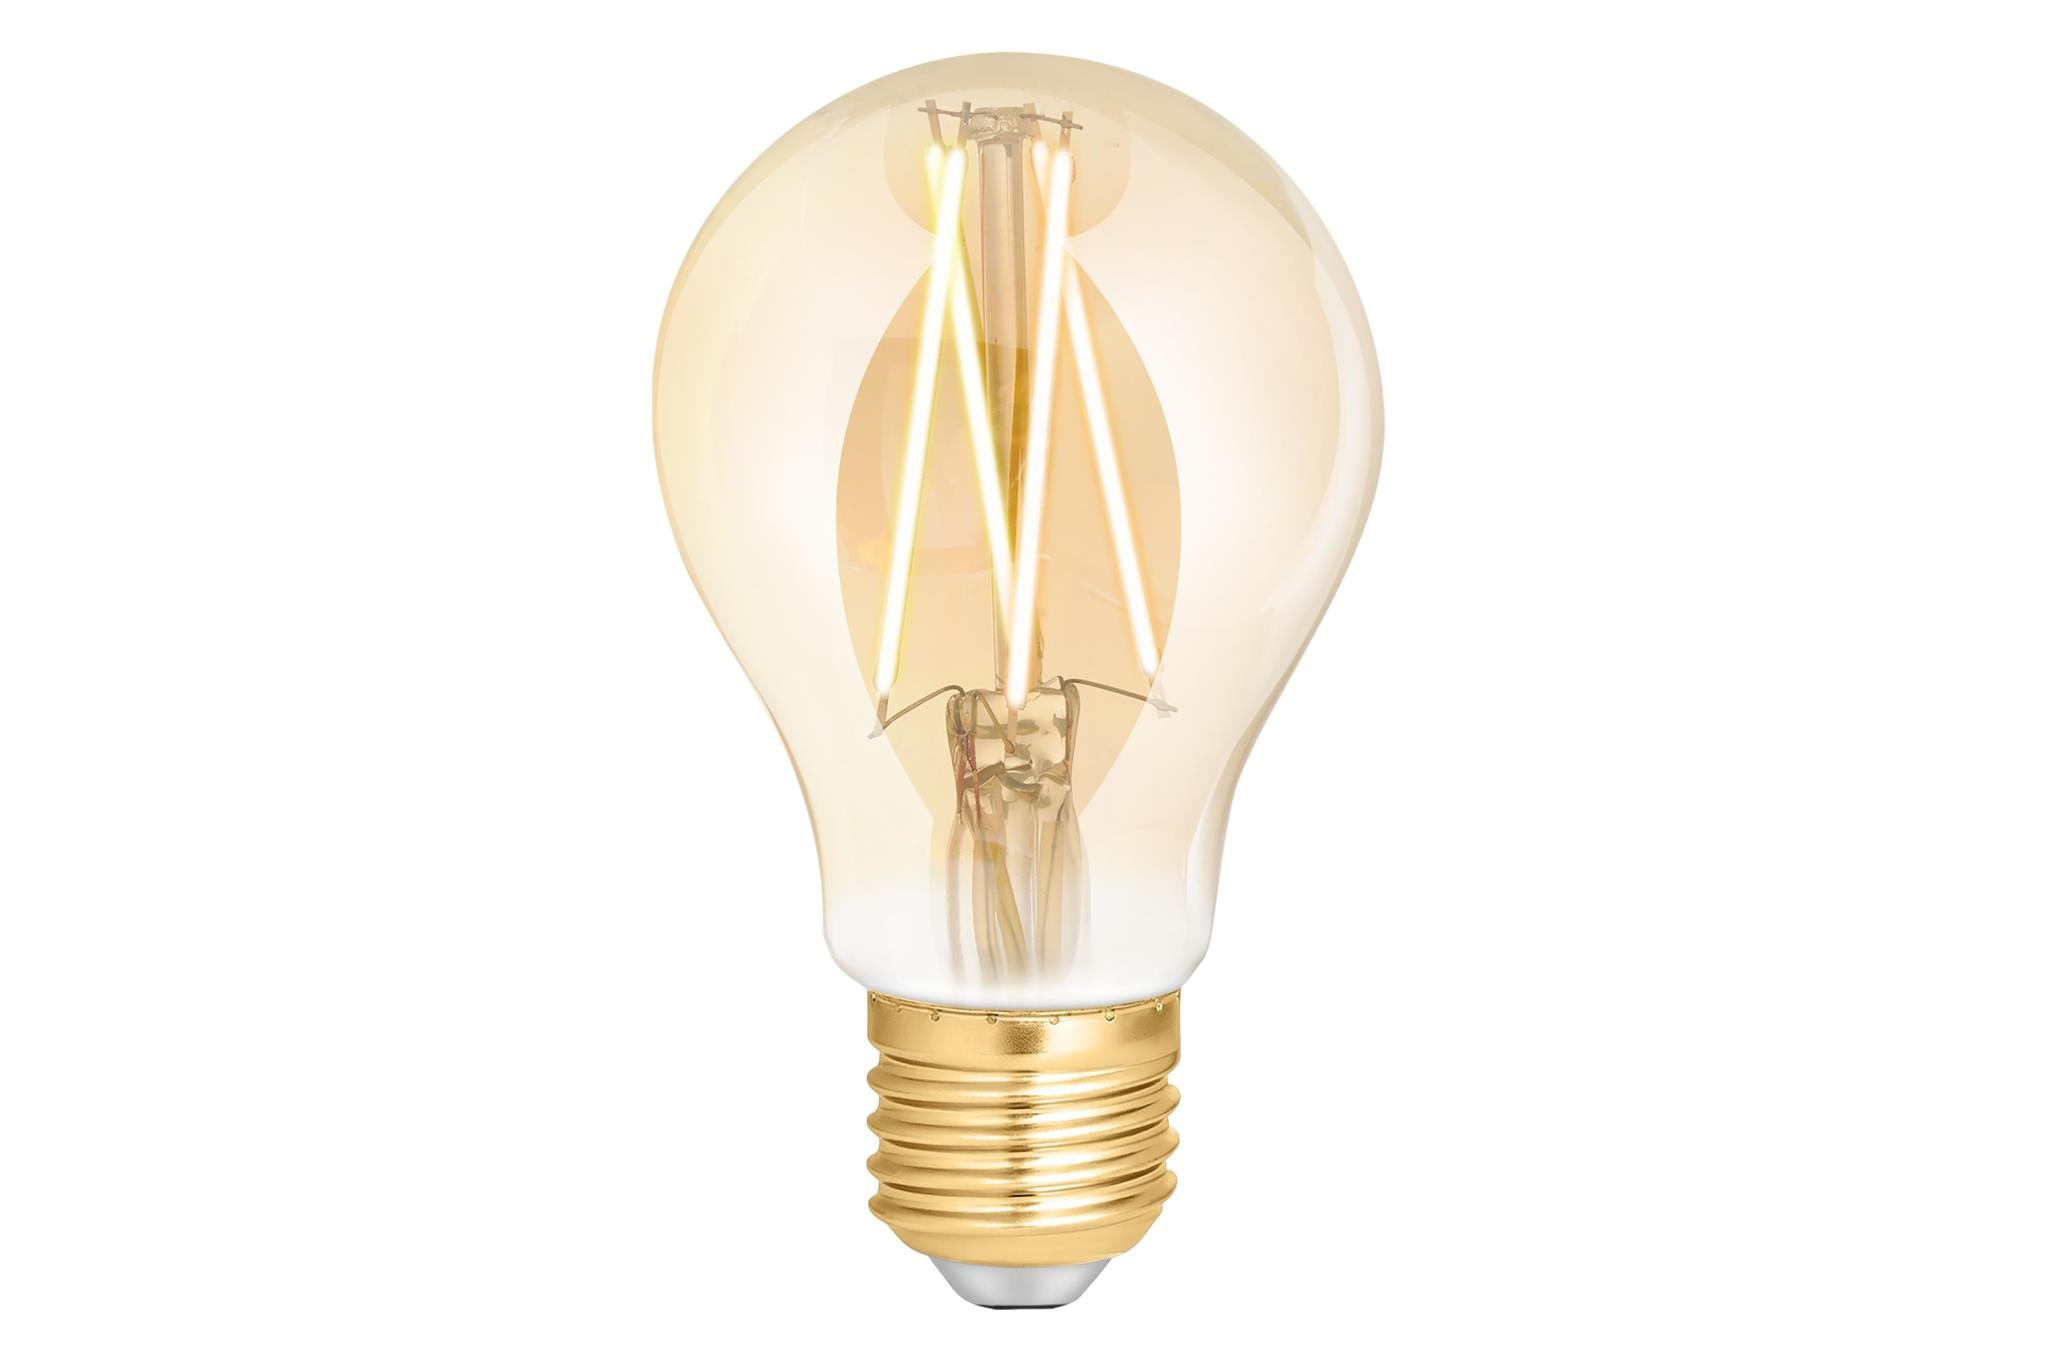 4lite WiZ Connected A60 Edison Filament LED Smart Bulb Amber White Dimmable WiFi  - E27 Screw